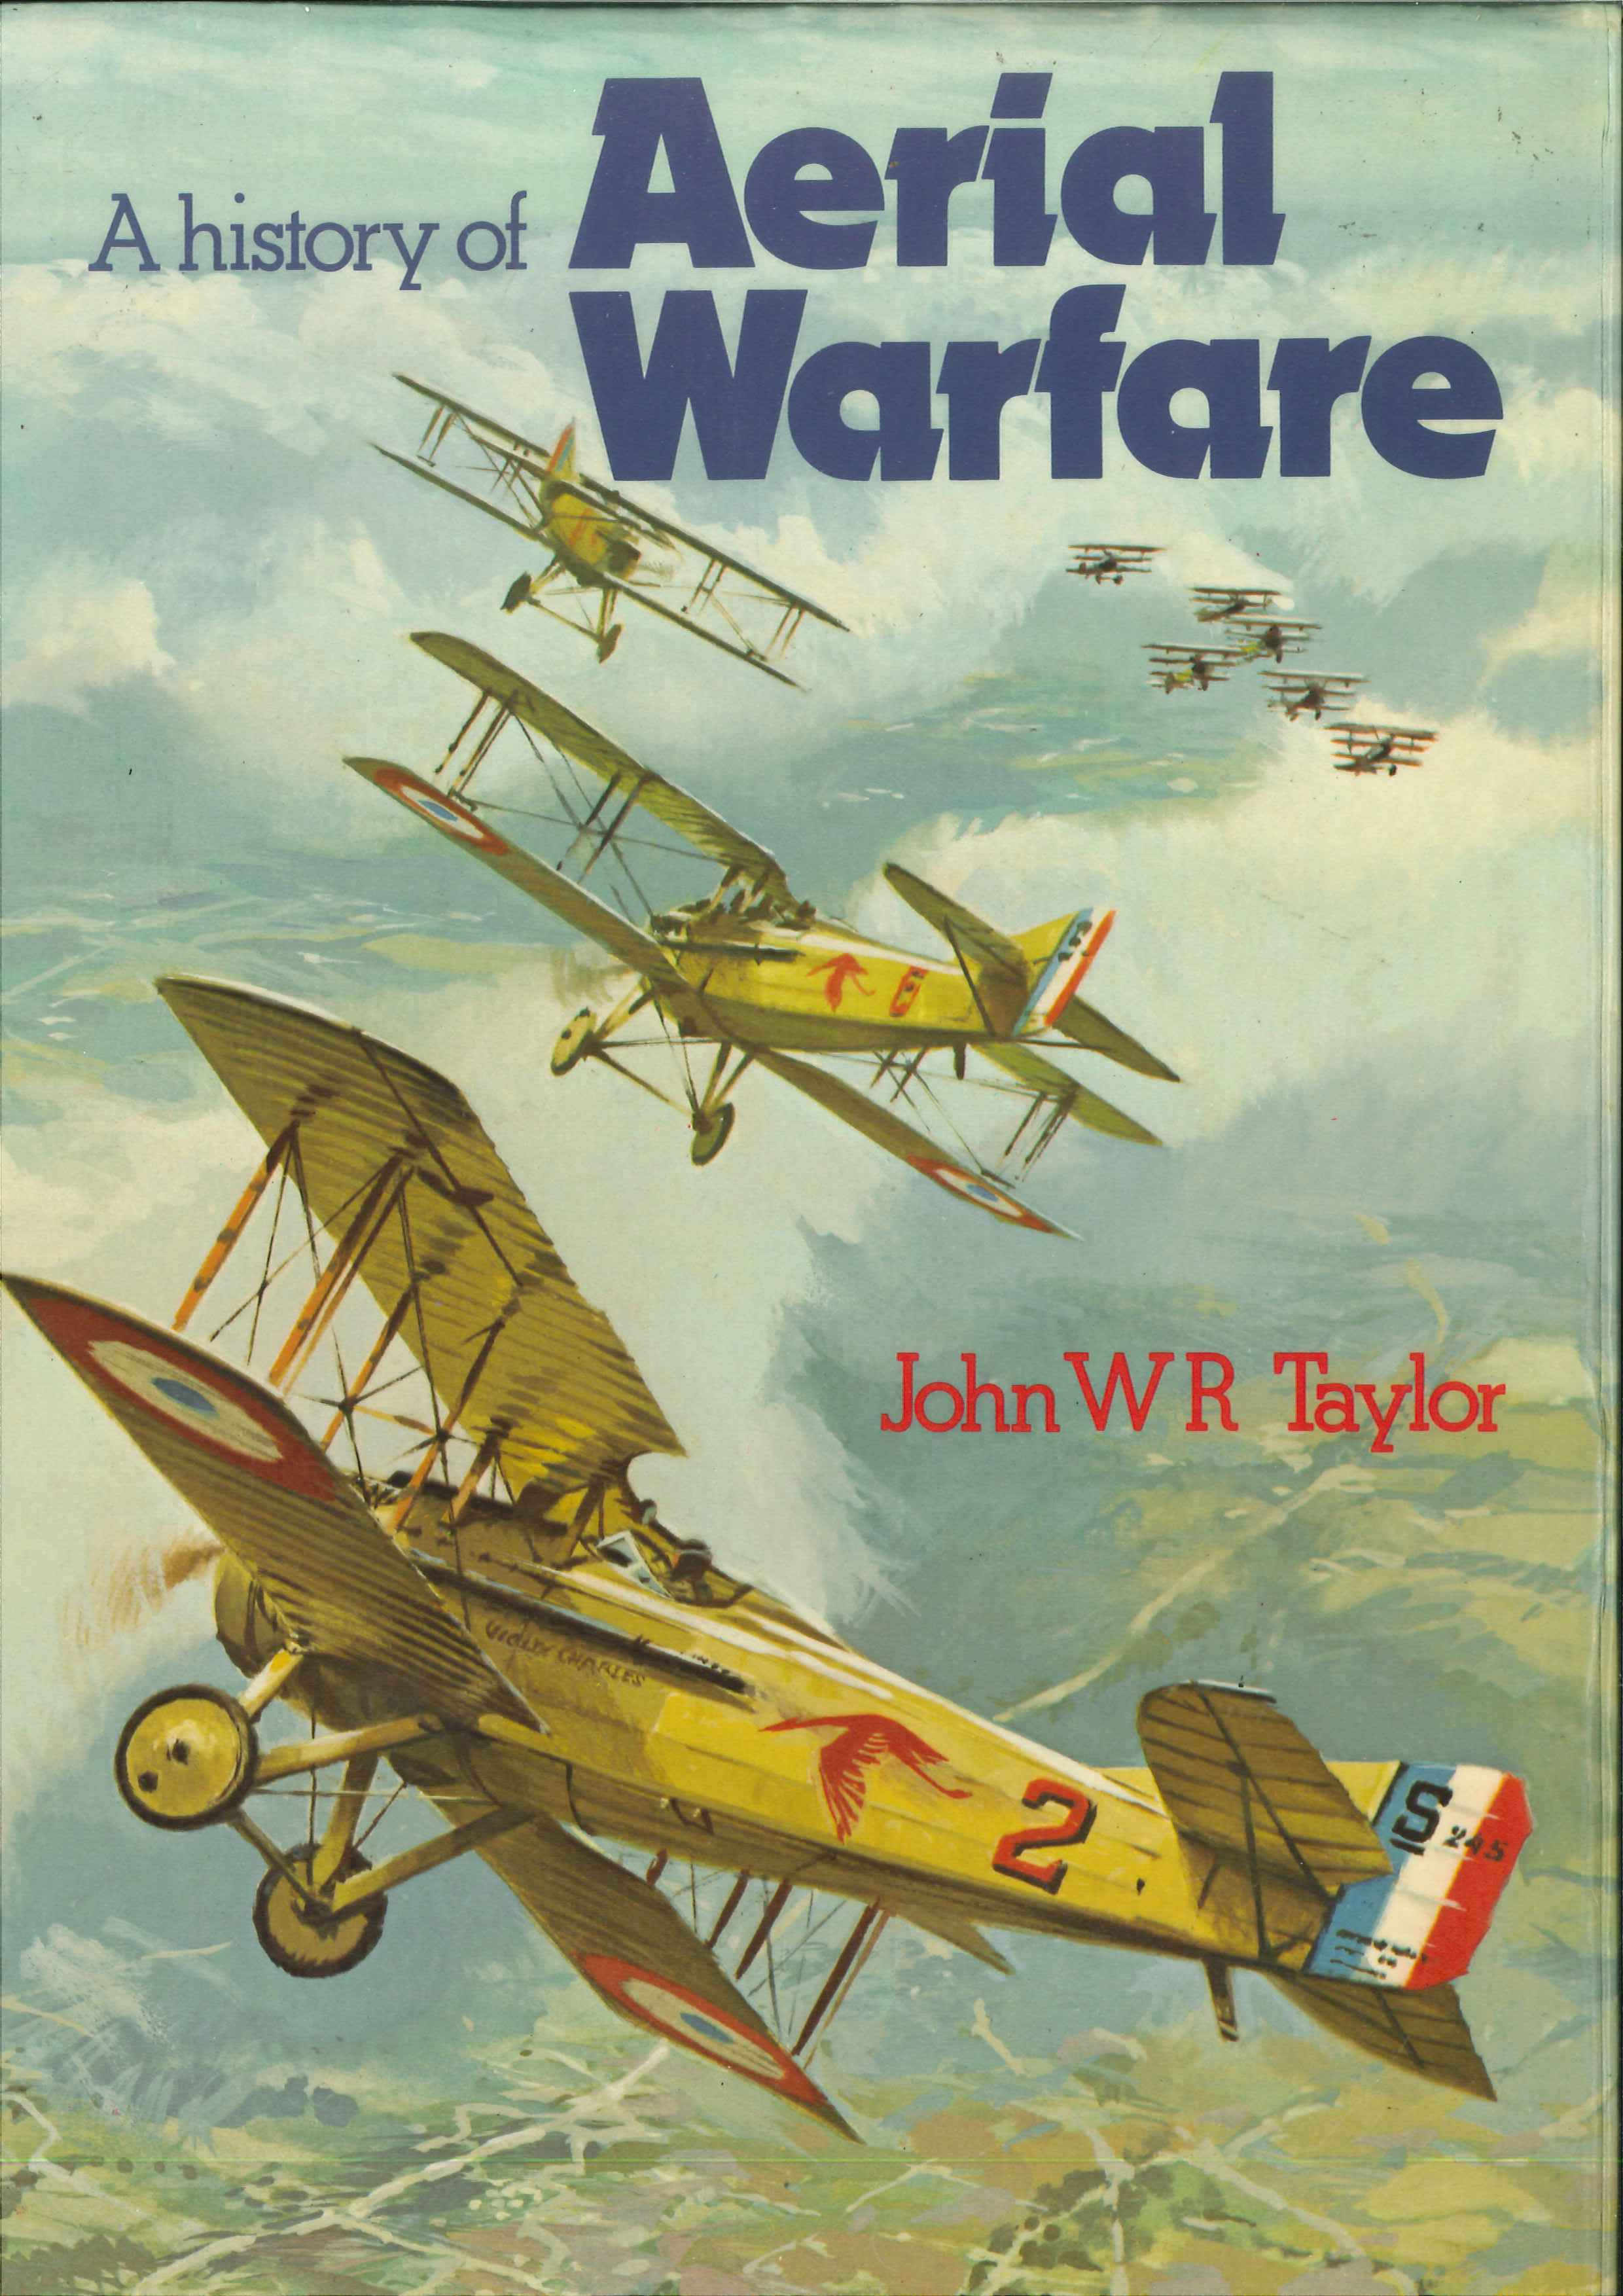 A History of Aerial Warfare